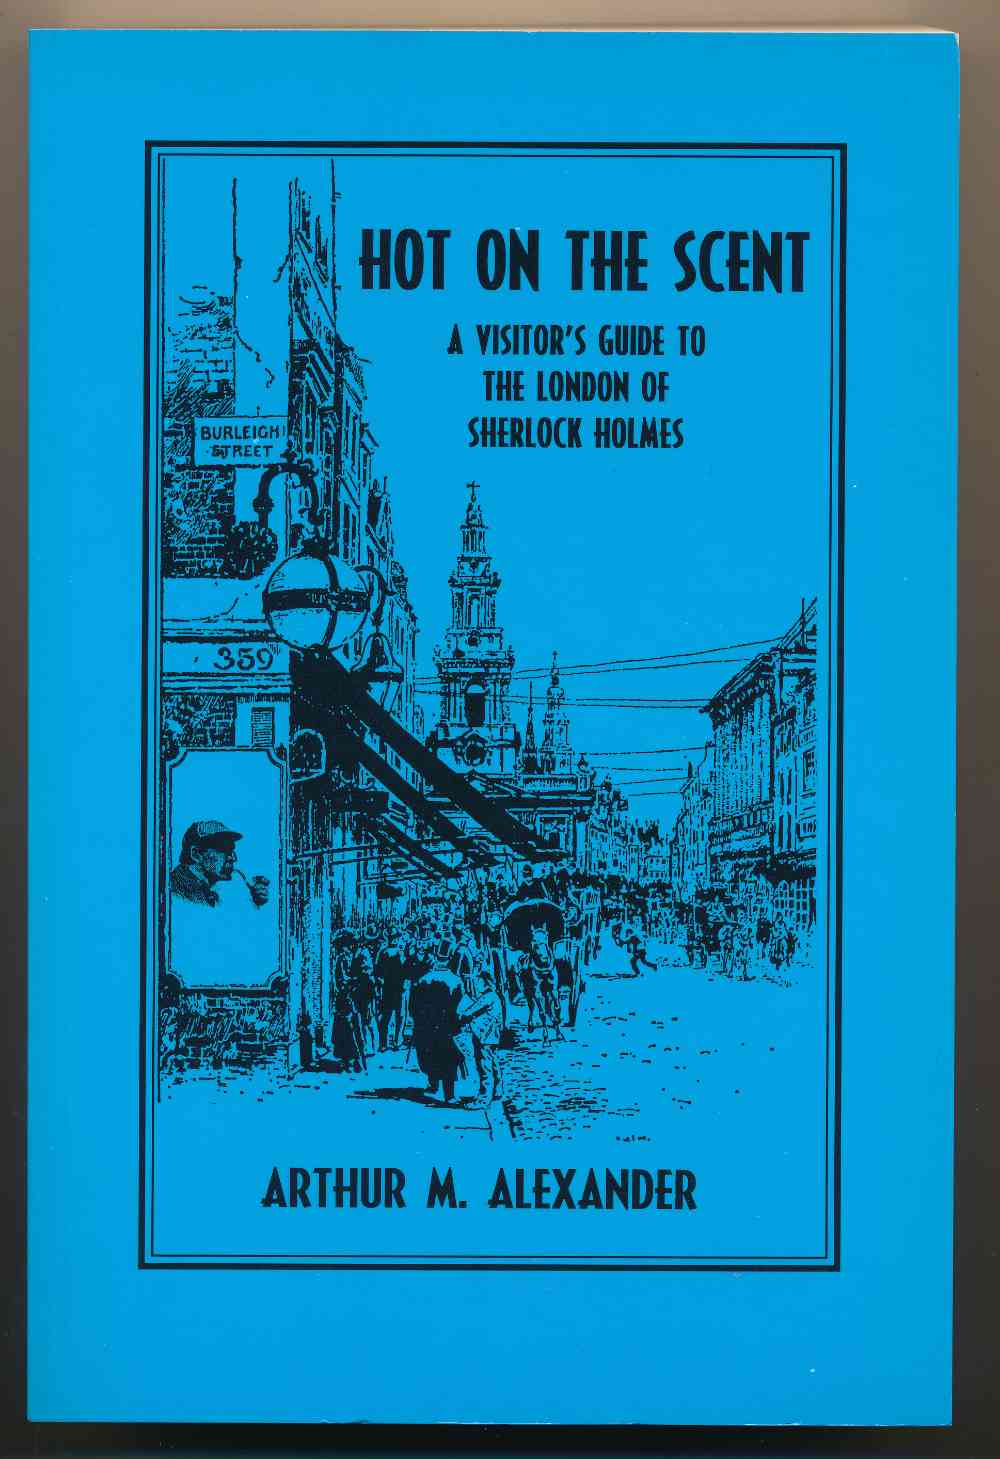 Hot on the scent : a visitor's guide to the London of Sherlock Holmes